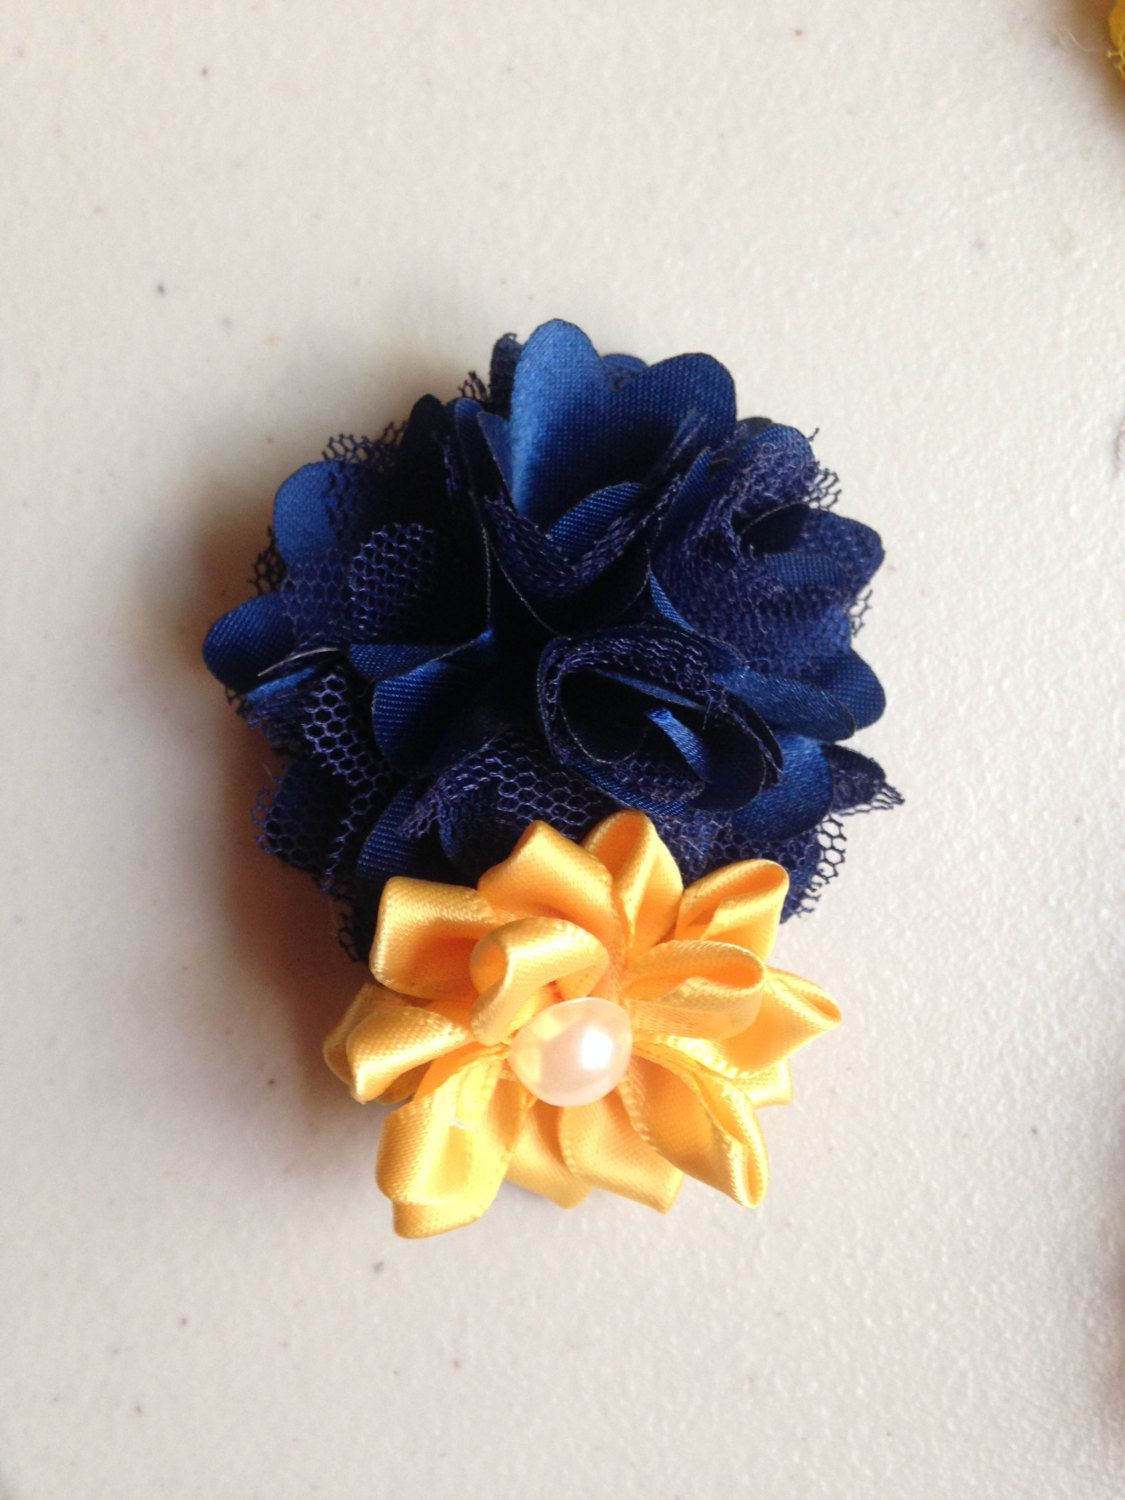 Yellow hair accessories for wedding - New To Labellaroseboutique On Etsy Navy Mustard Clip Navy Mesh Flower Yellow Satin Flower With Pearl On Clip Flower Girl Wedding Baby Toddler Child Teen